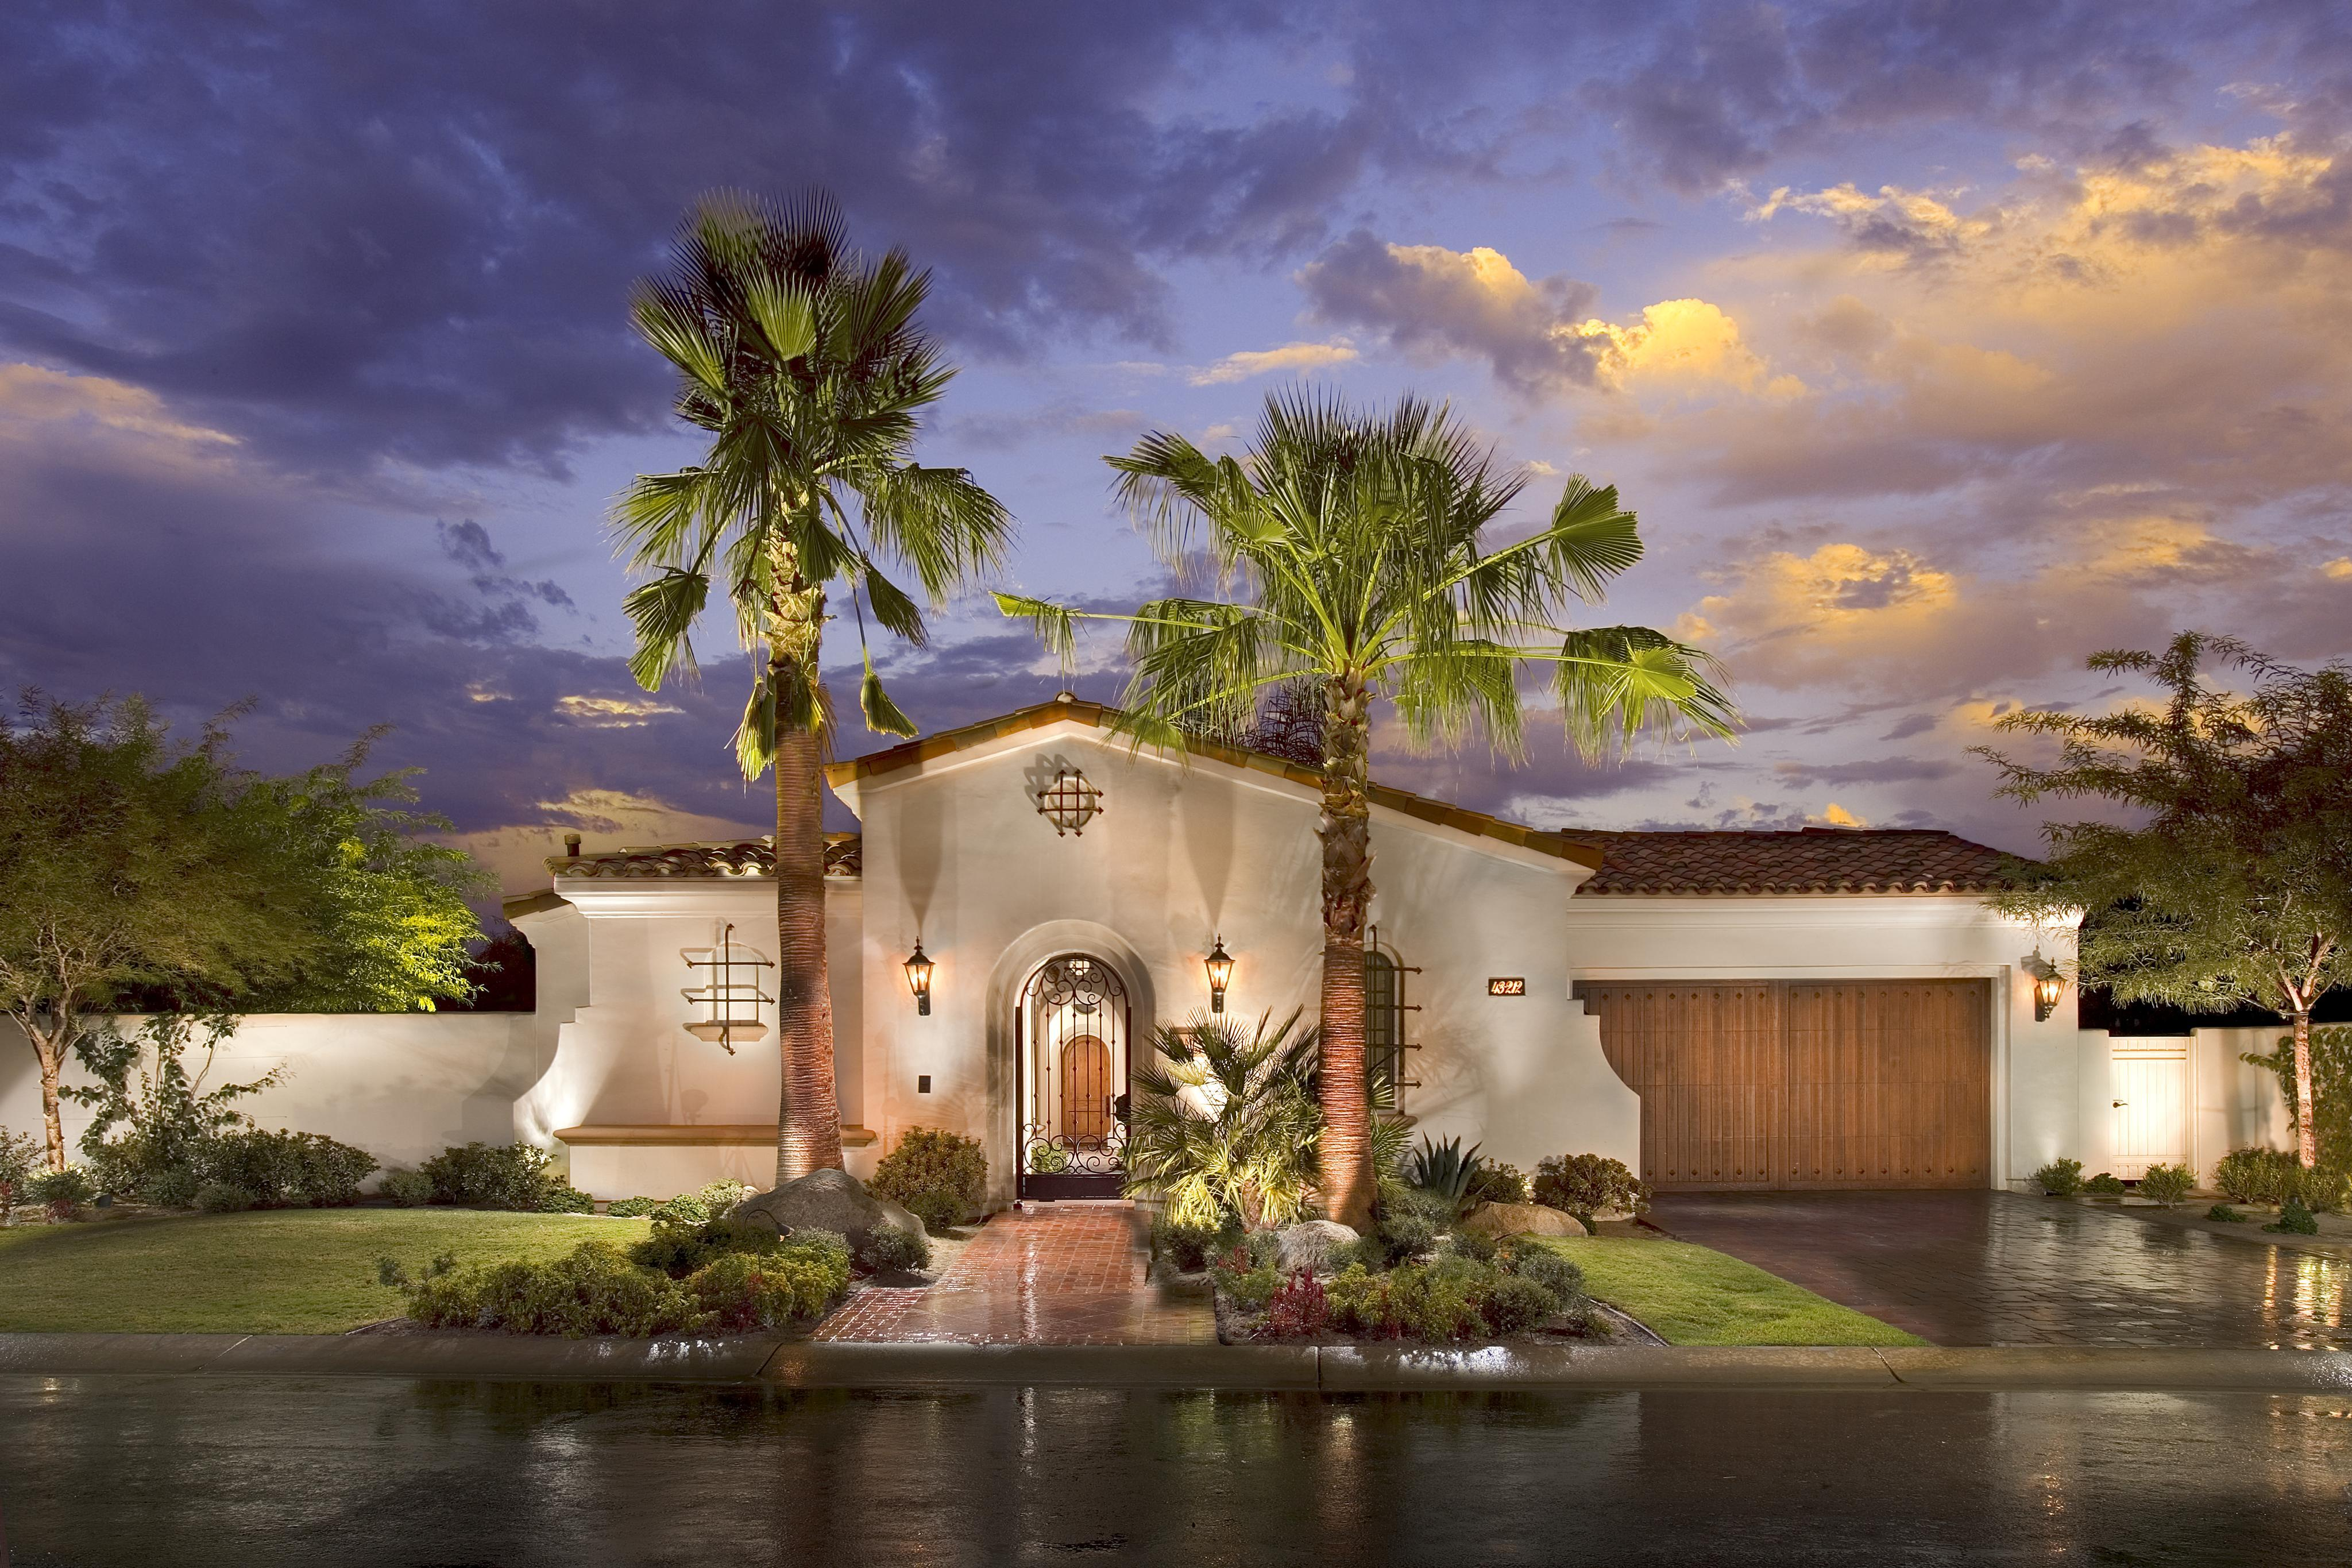 Toscana country club homes indian wells ca homemade ftempo Toscana house